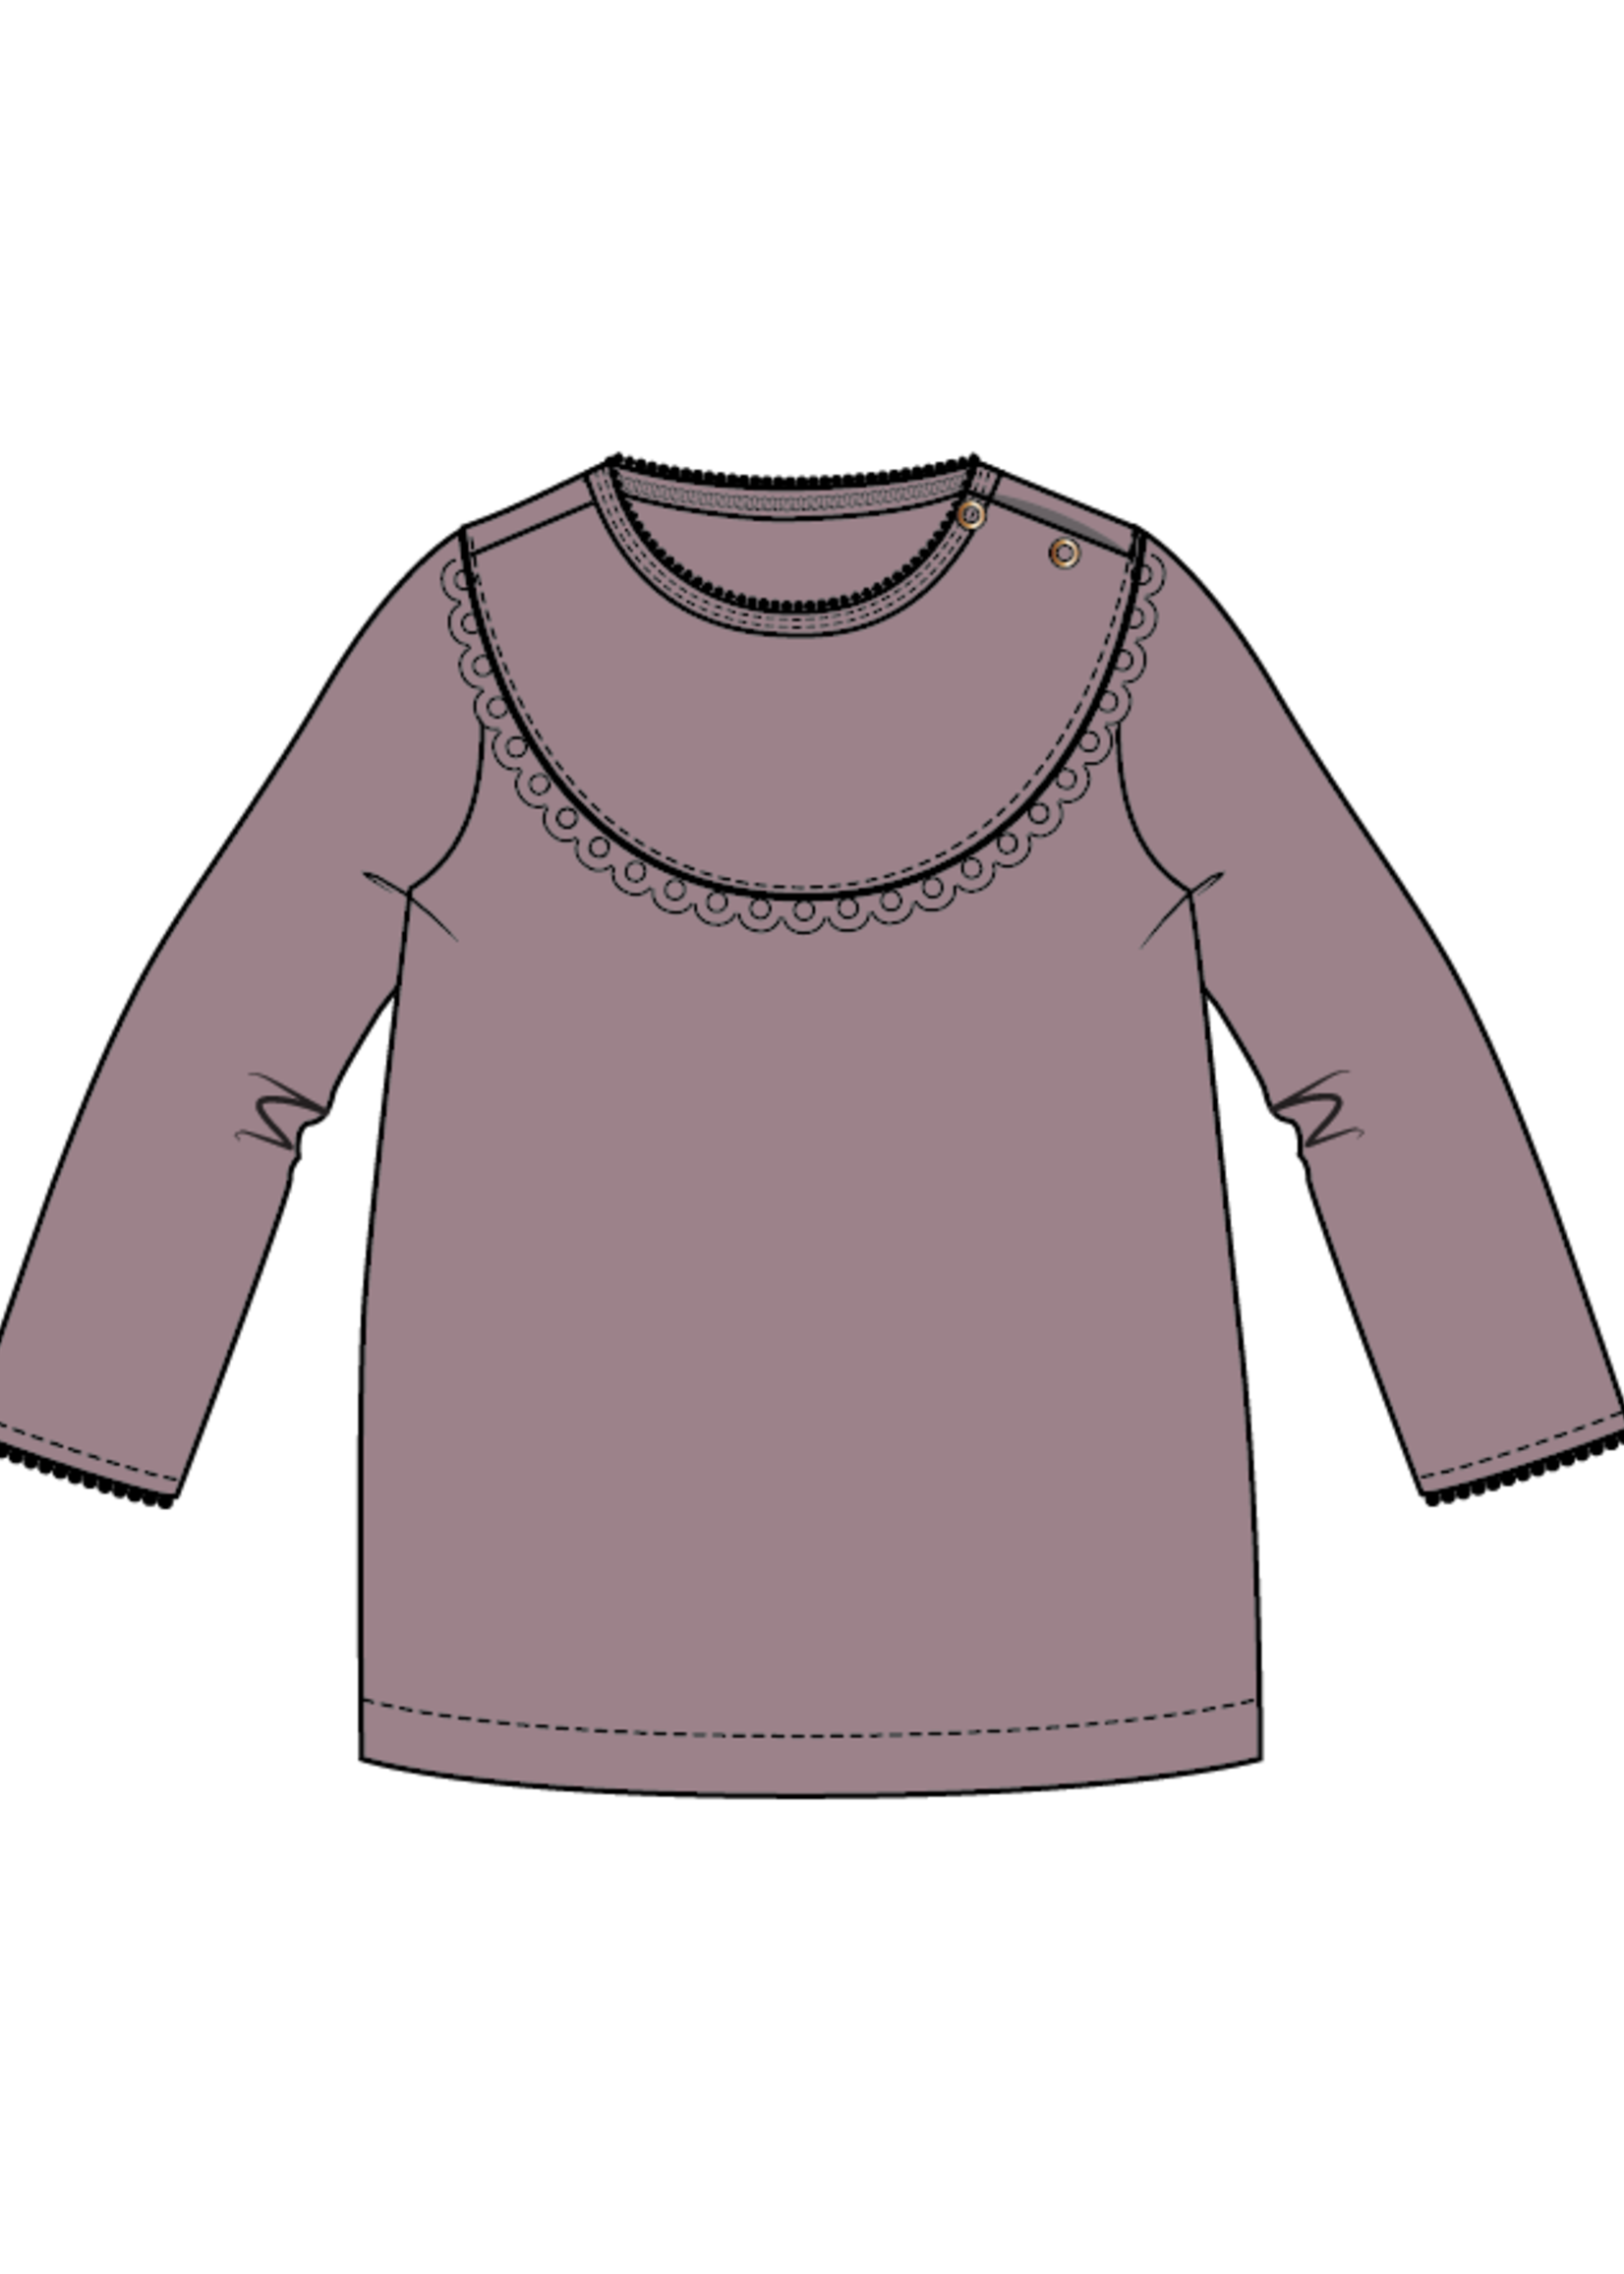 Blossom Kids Baby tunic with lace - Dusty Violet